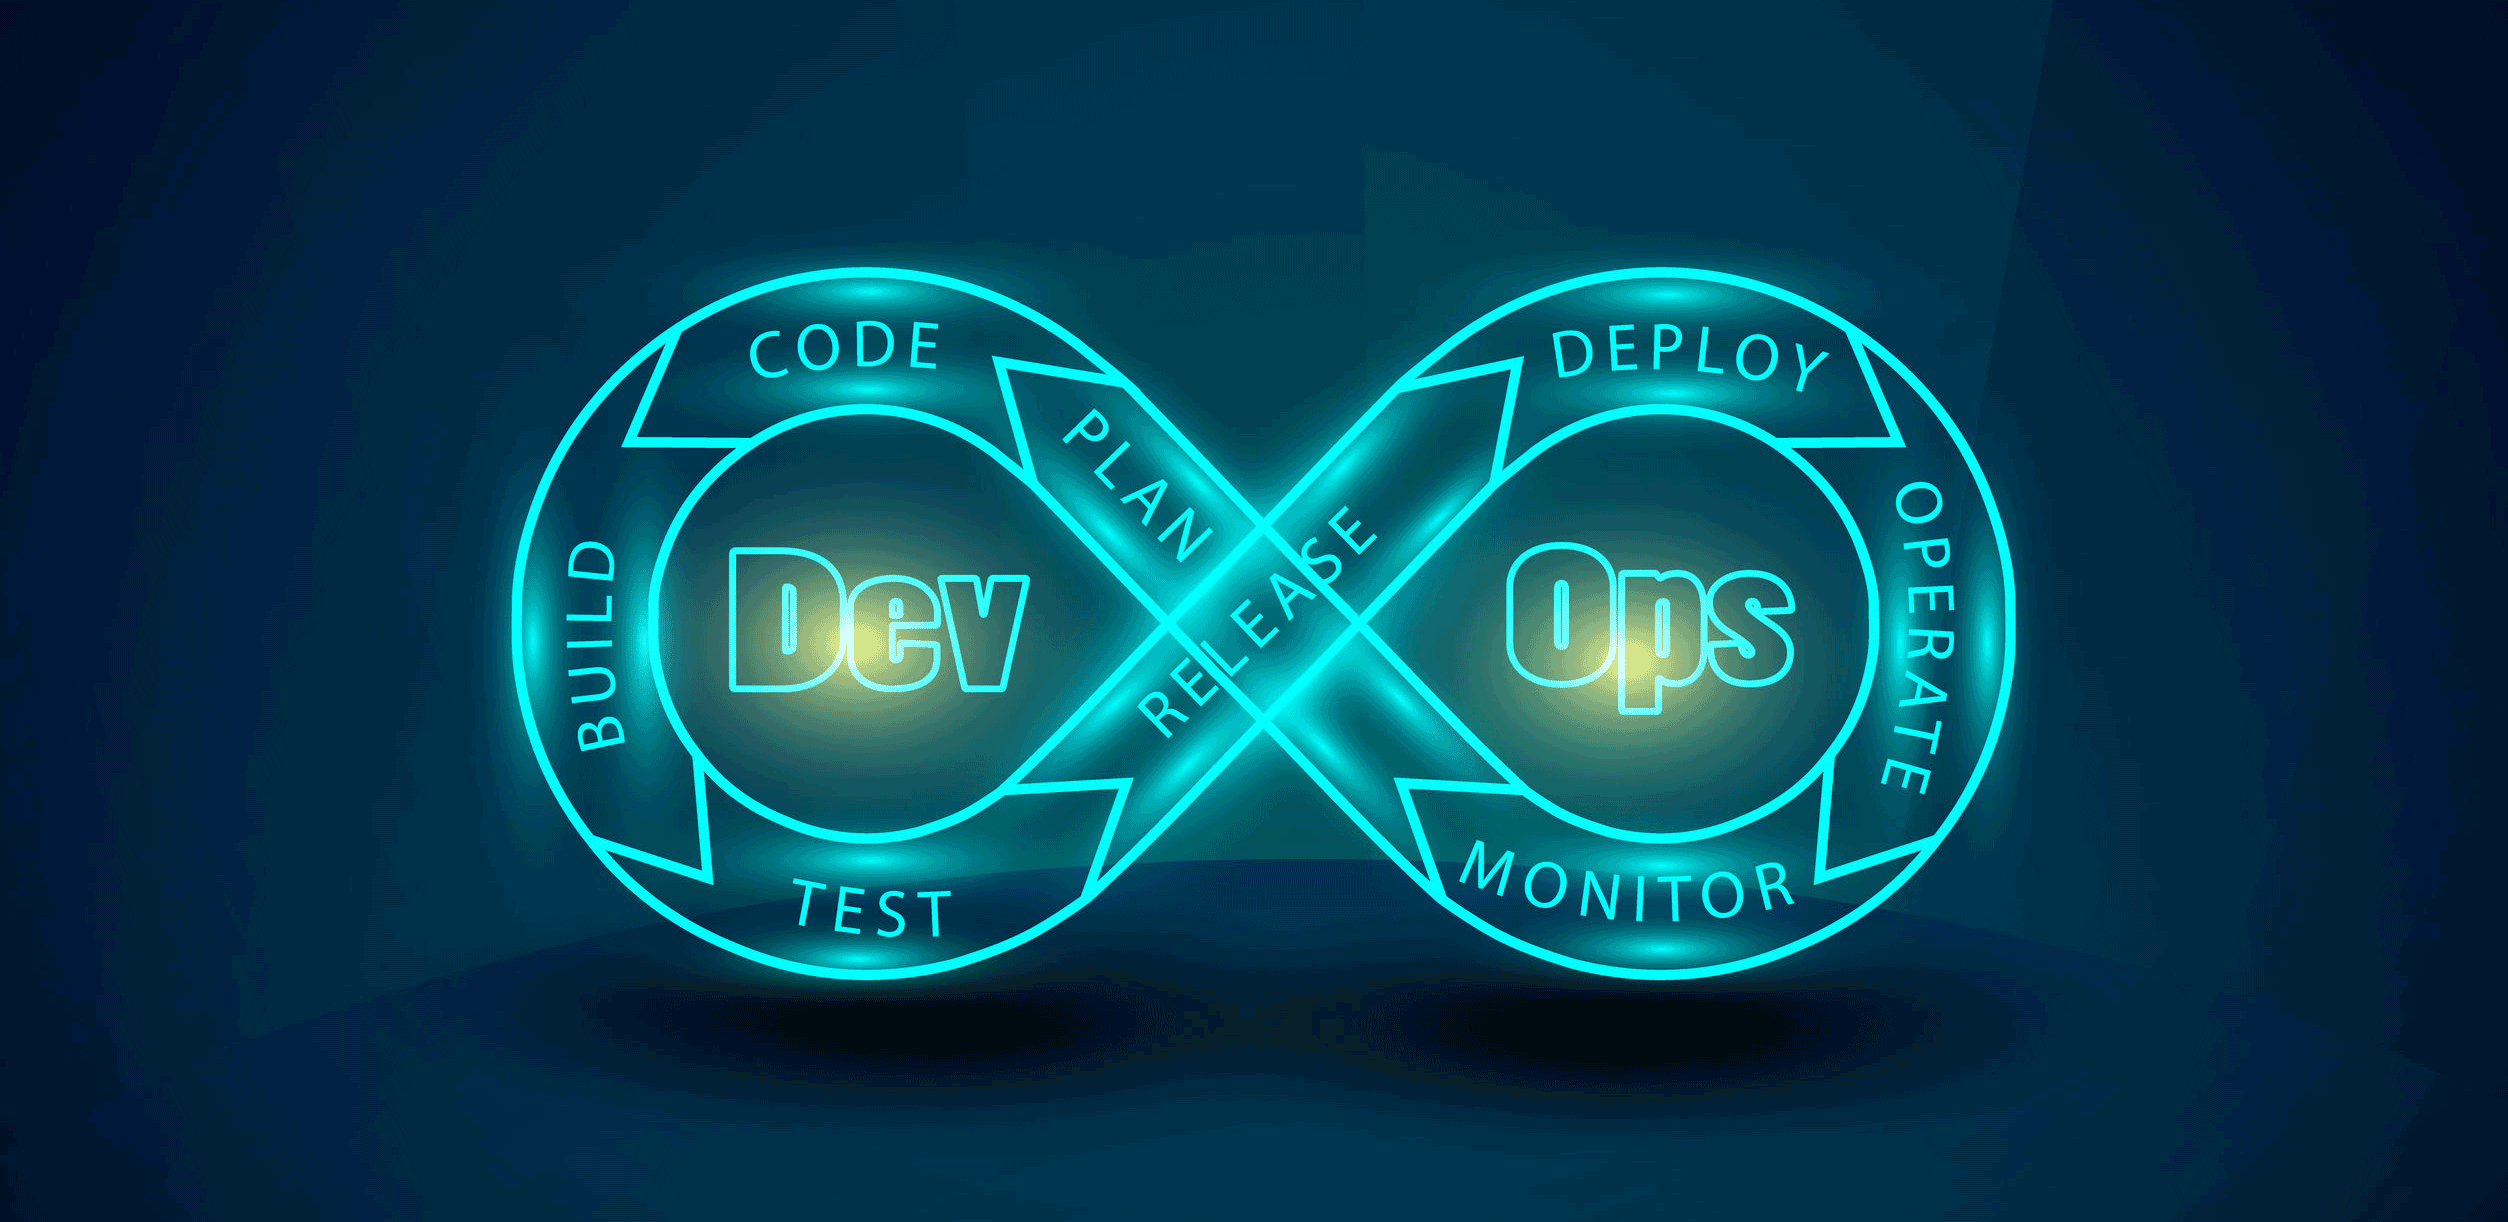 All Aboard the DevOps SHIP